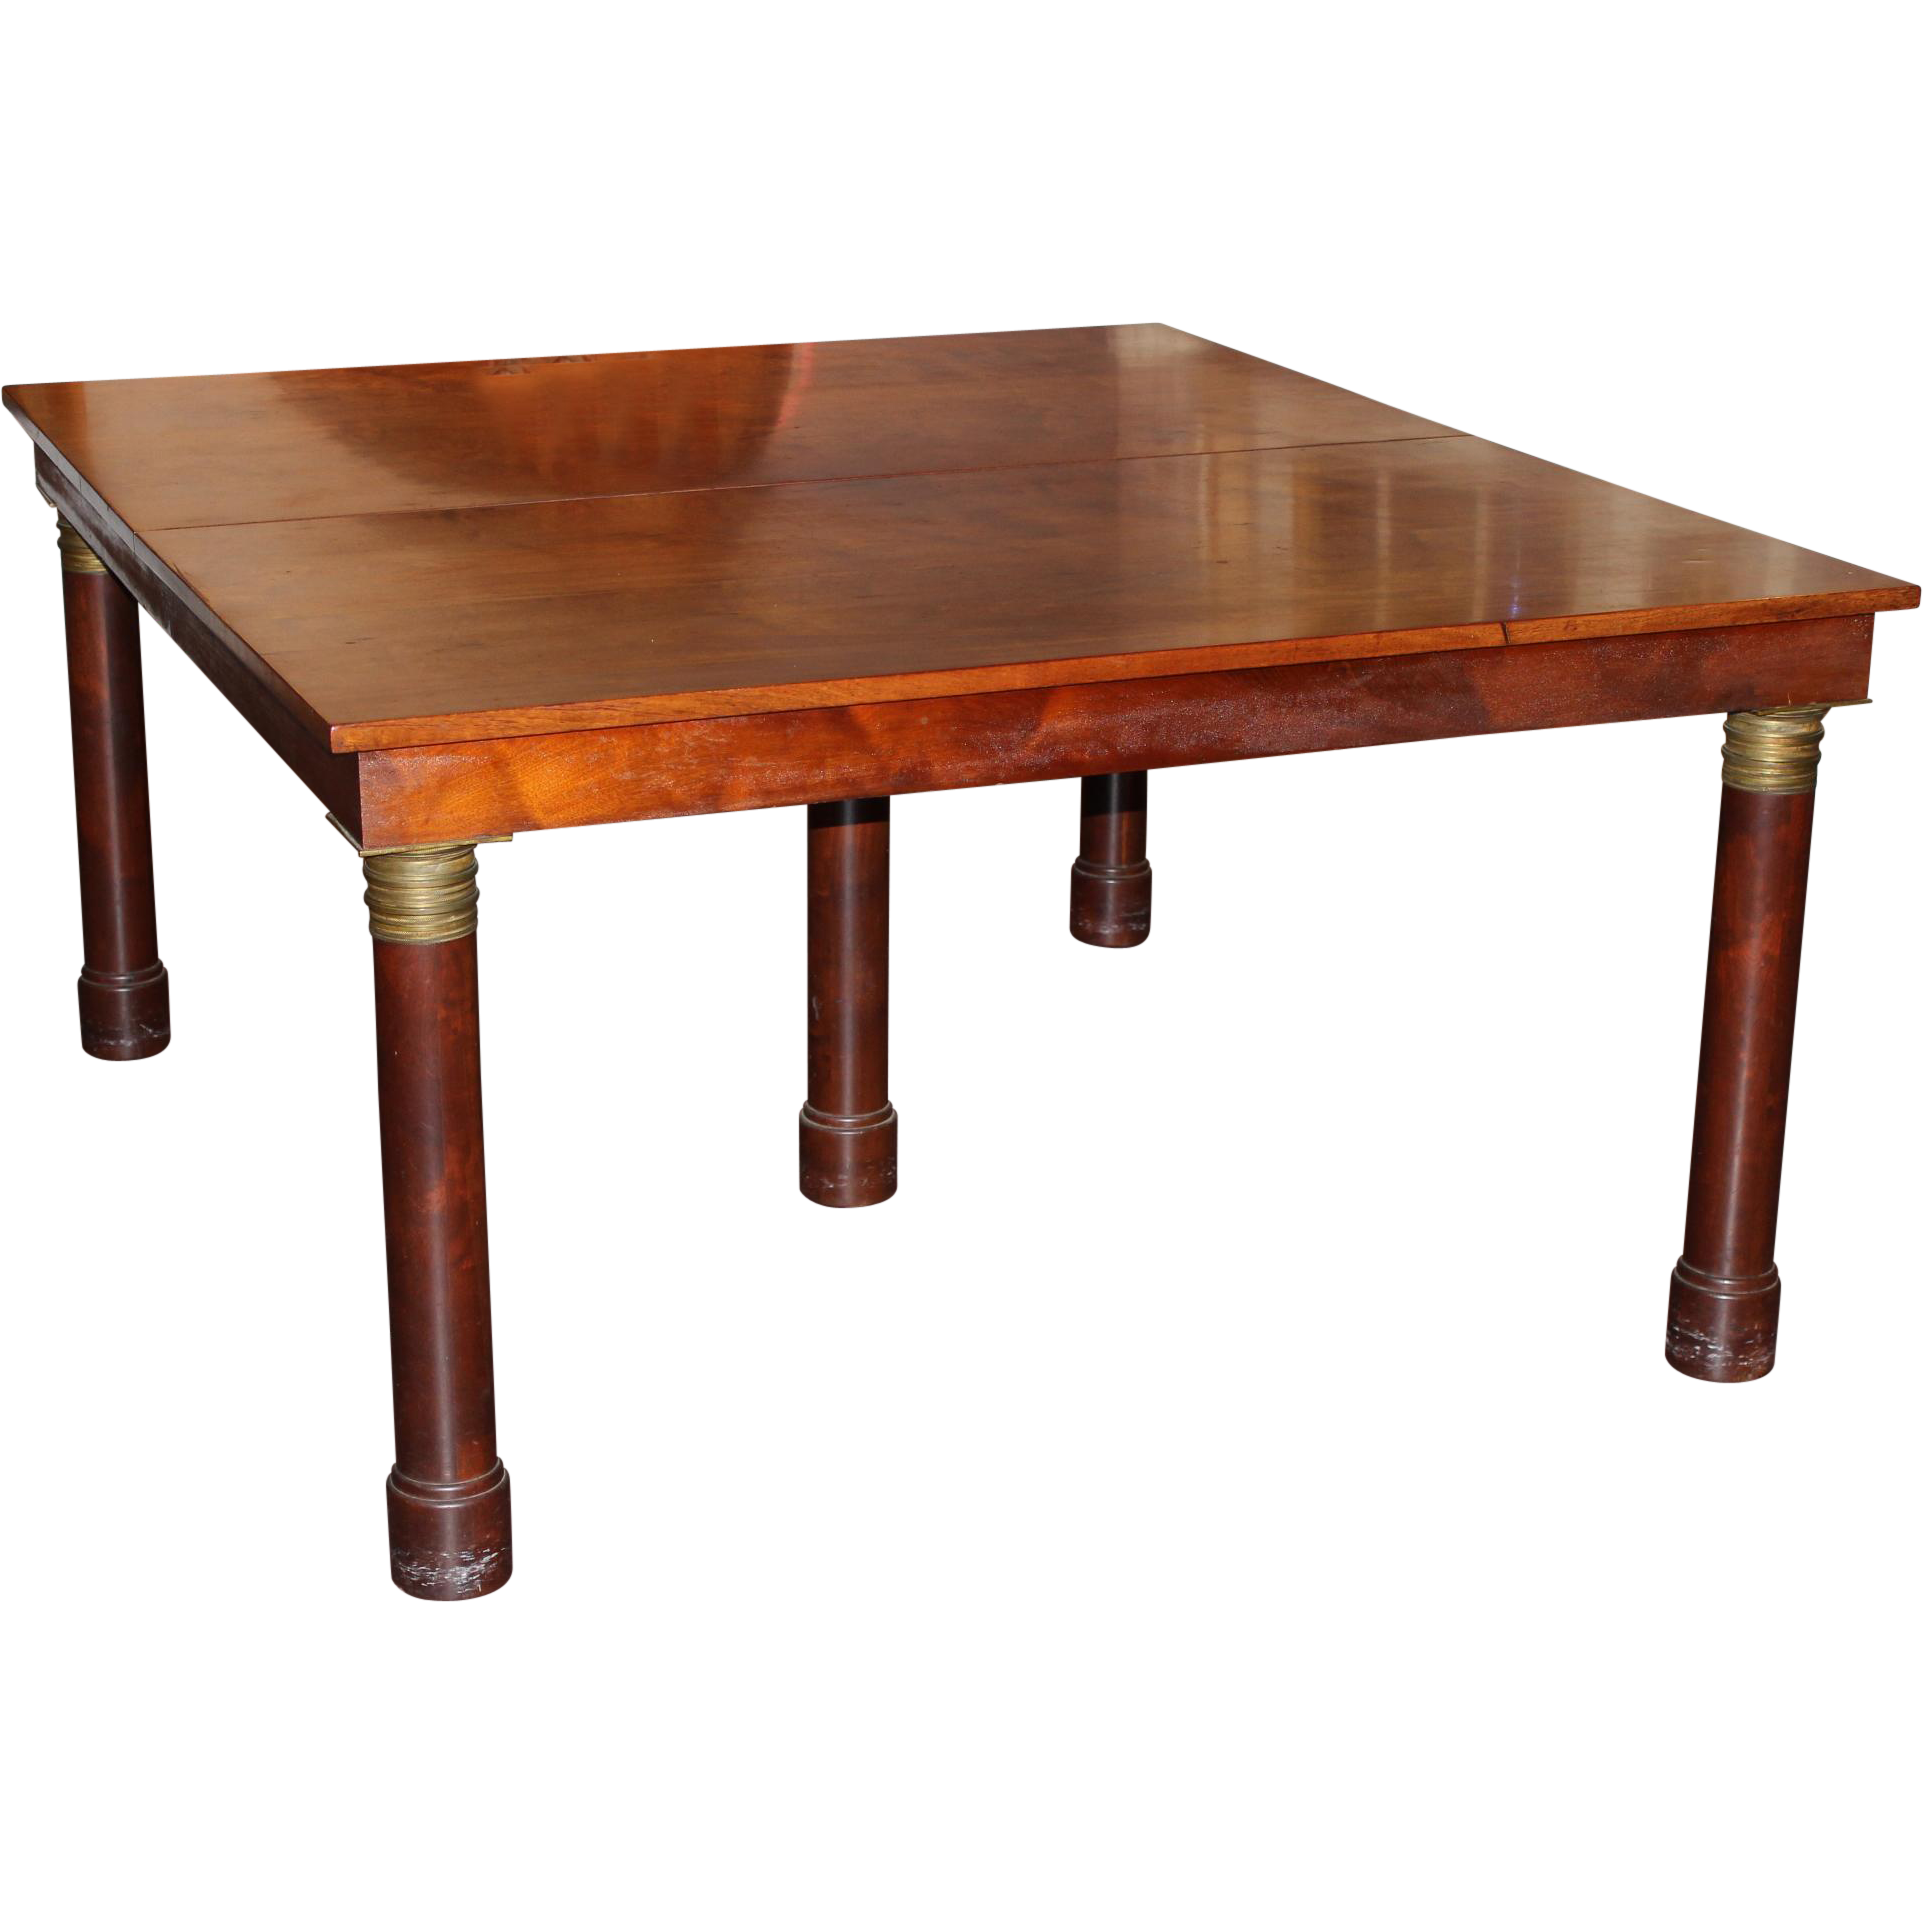 19th c Walnut Dining Table in the Classic Taste with 7 Leaves